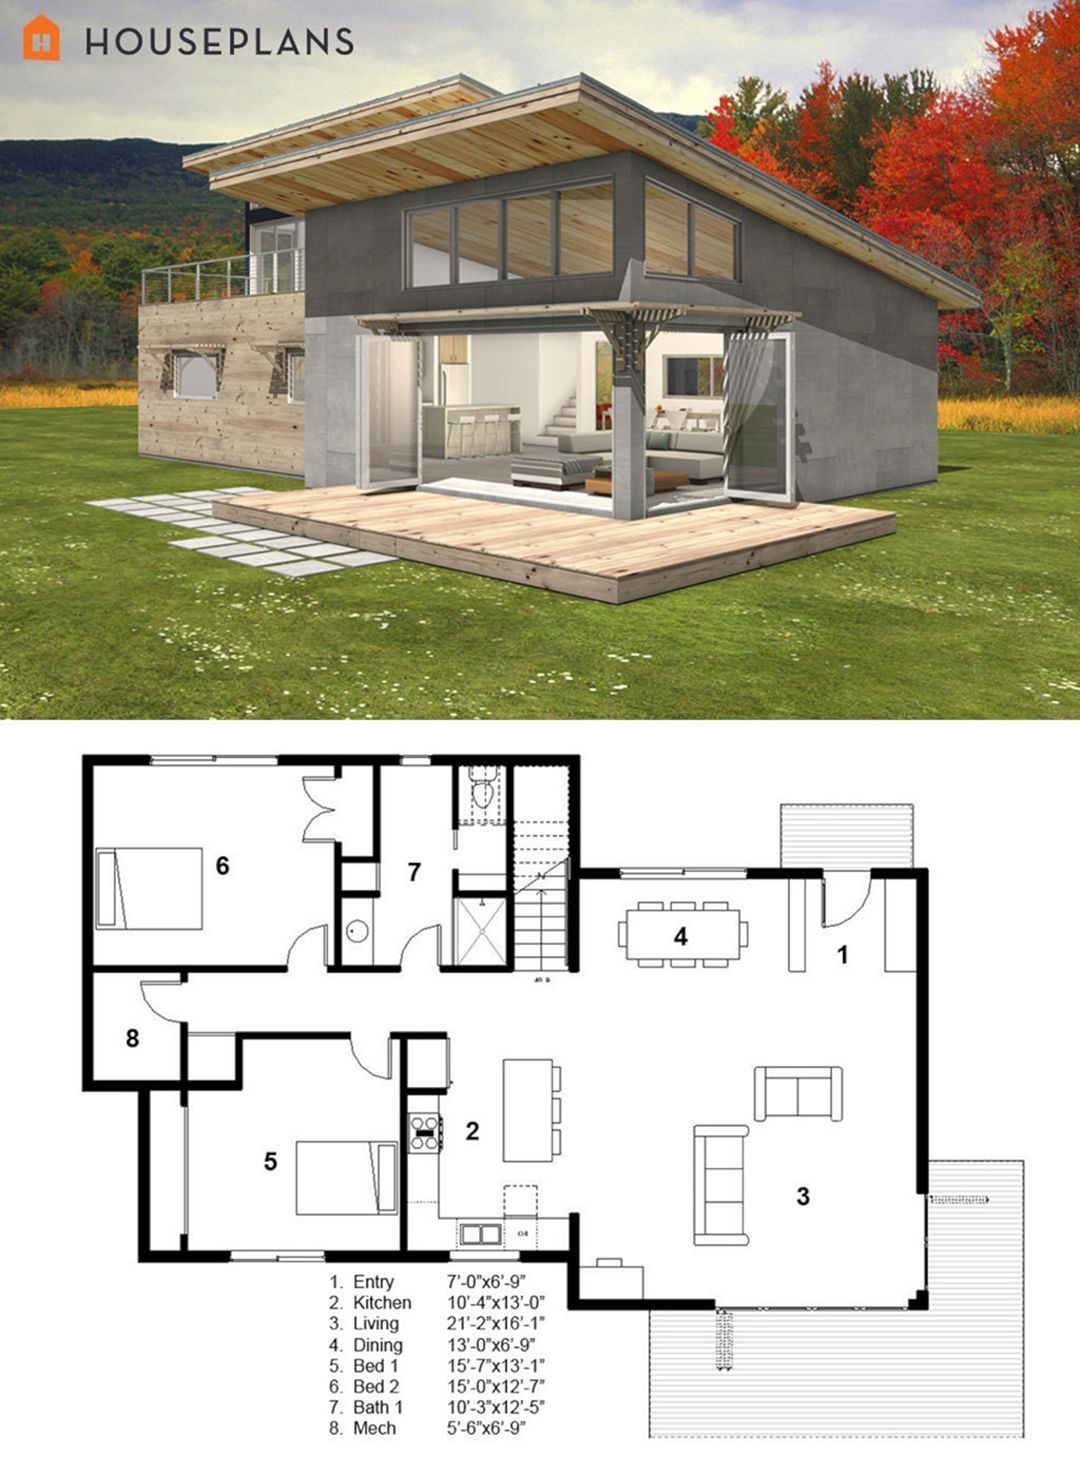 The Best Modern Tiny House Design Small Homes Inspirations No 50 Modern Style House Plans Small Modern Cabin Cabin House Plans